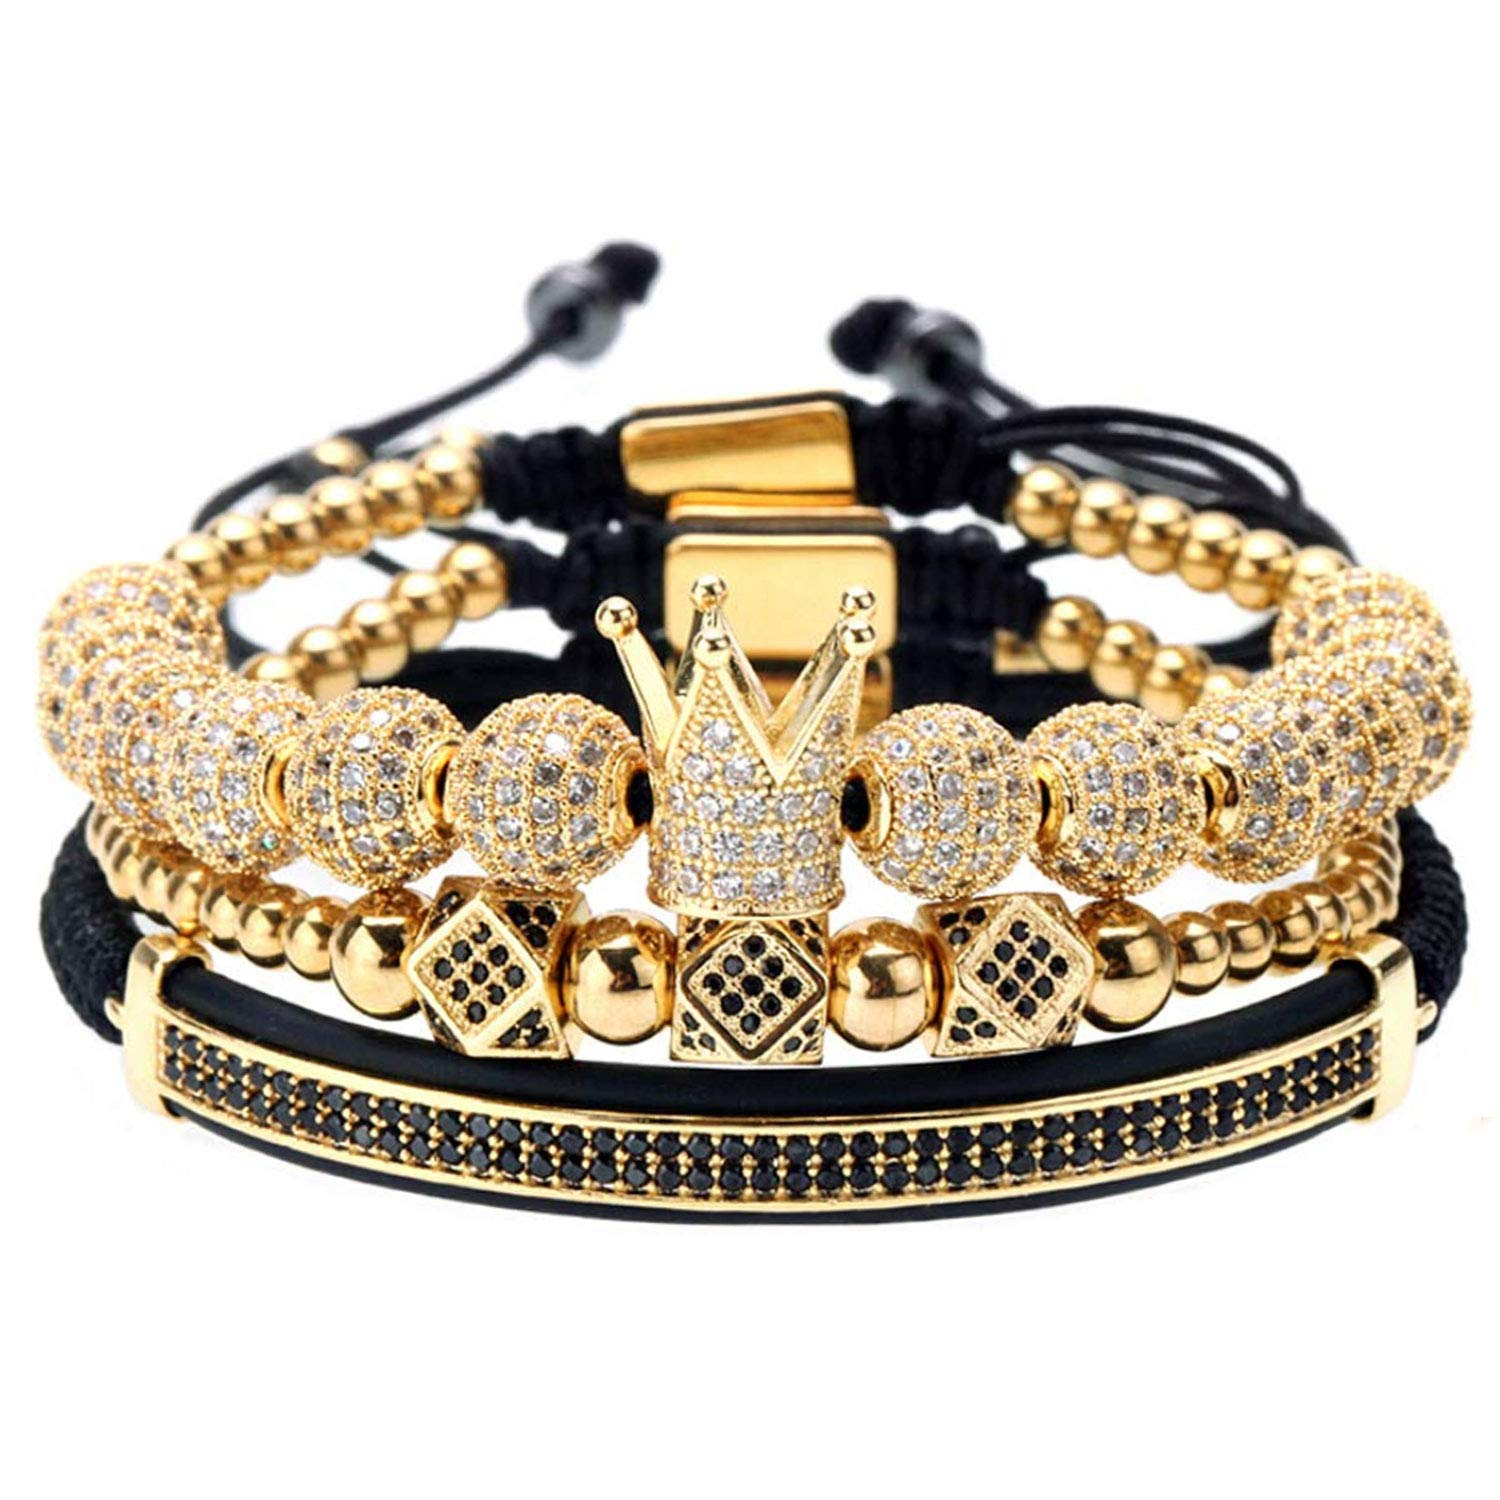 Luxury CZ Imperial Gold Crown Bracelets Set King Royal Style with 8mm Zirconia Beads Braided Pulseira Bangle Charm Jewelry for Women Men by GVUSMIL